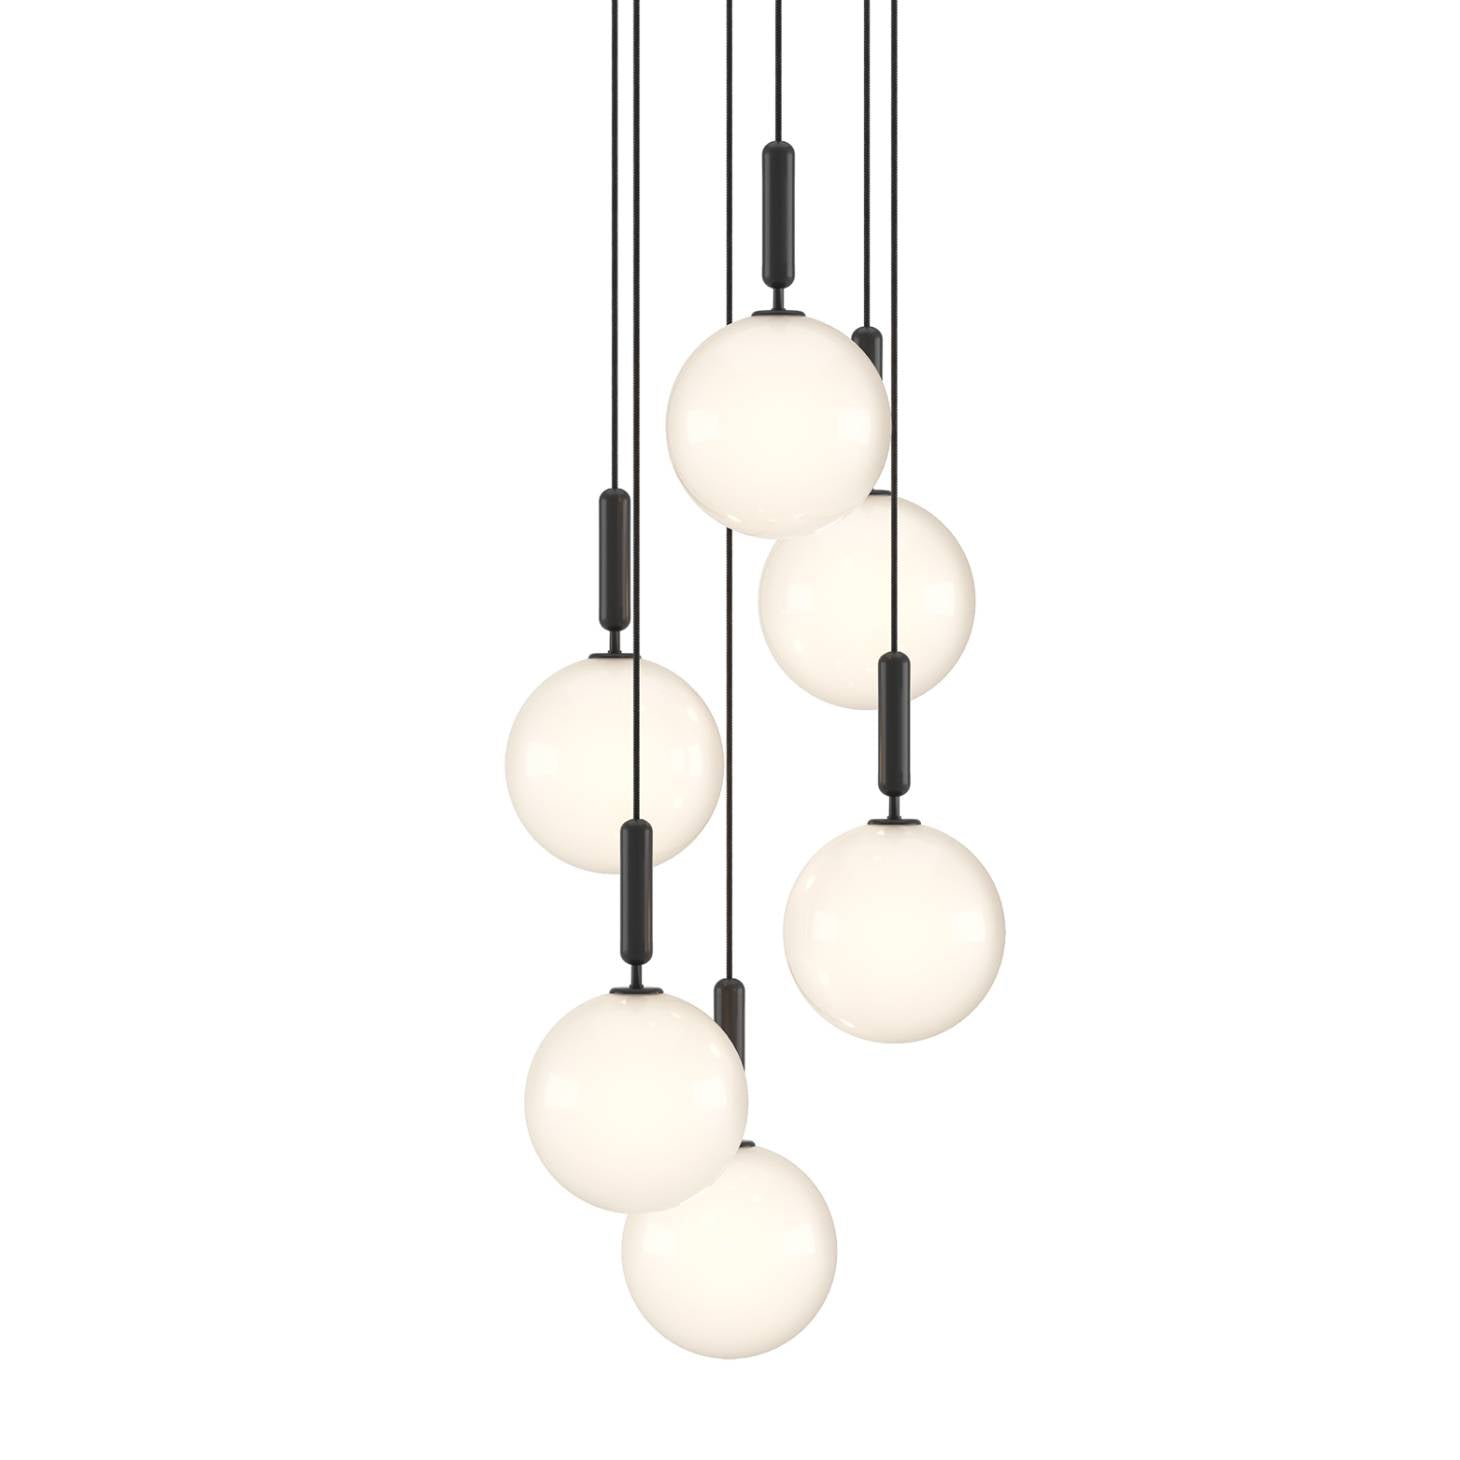 Miira 6 Chandelier: Opal White + Large